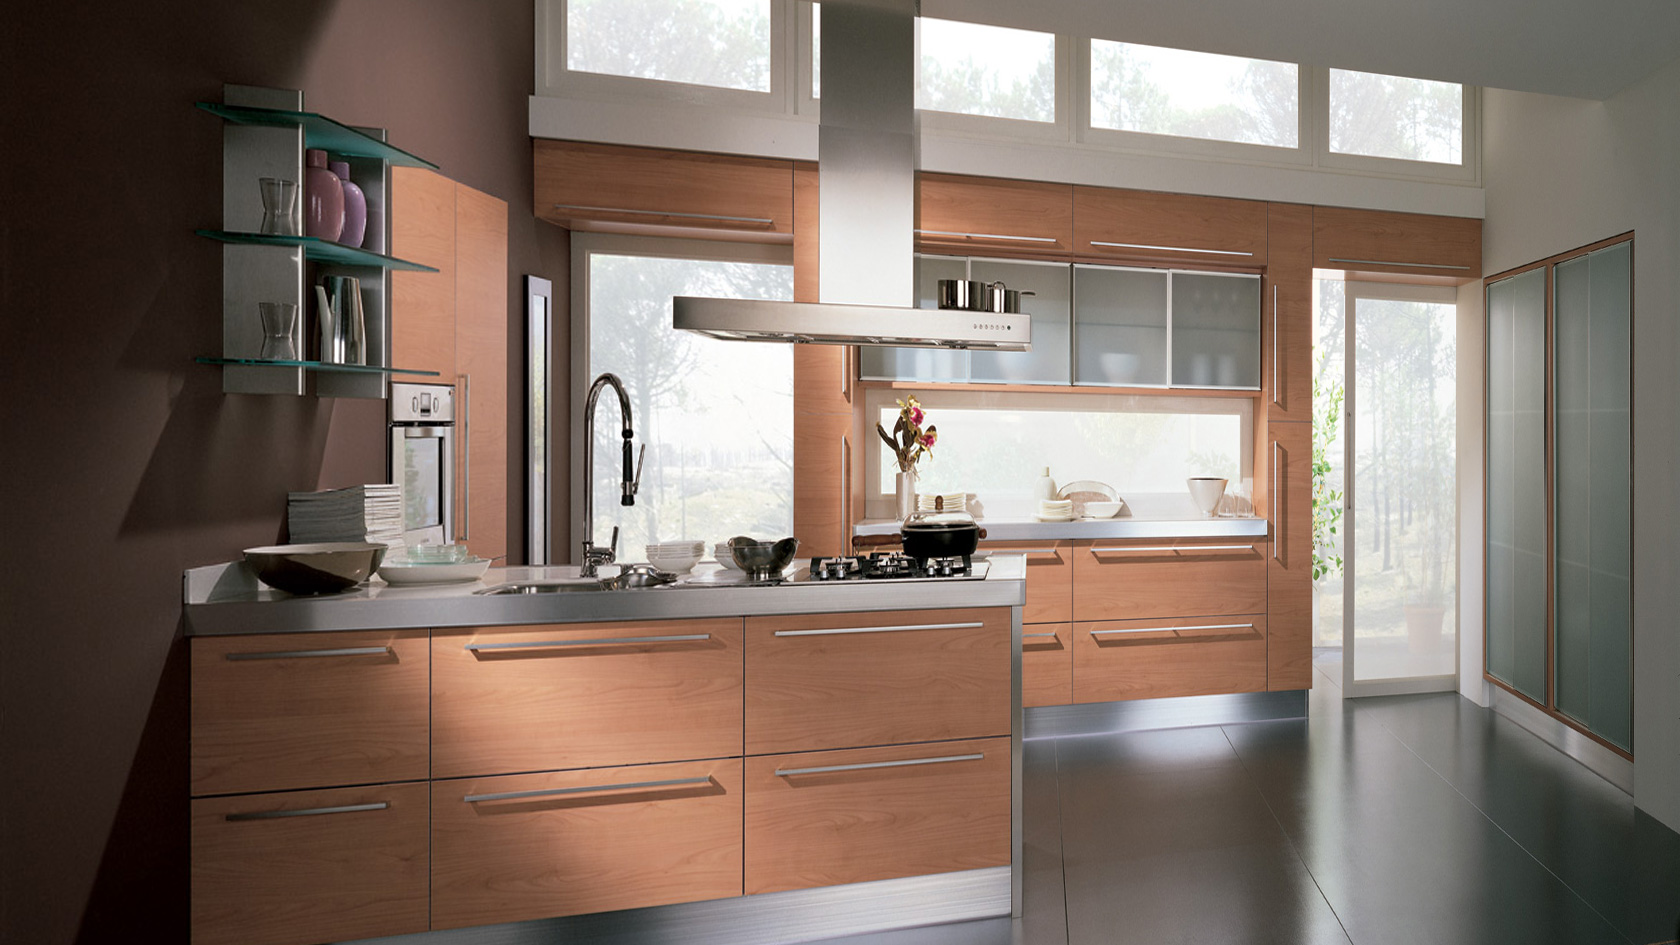 INDIA'S BEST MODULAR KITCHEN COMPANY